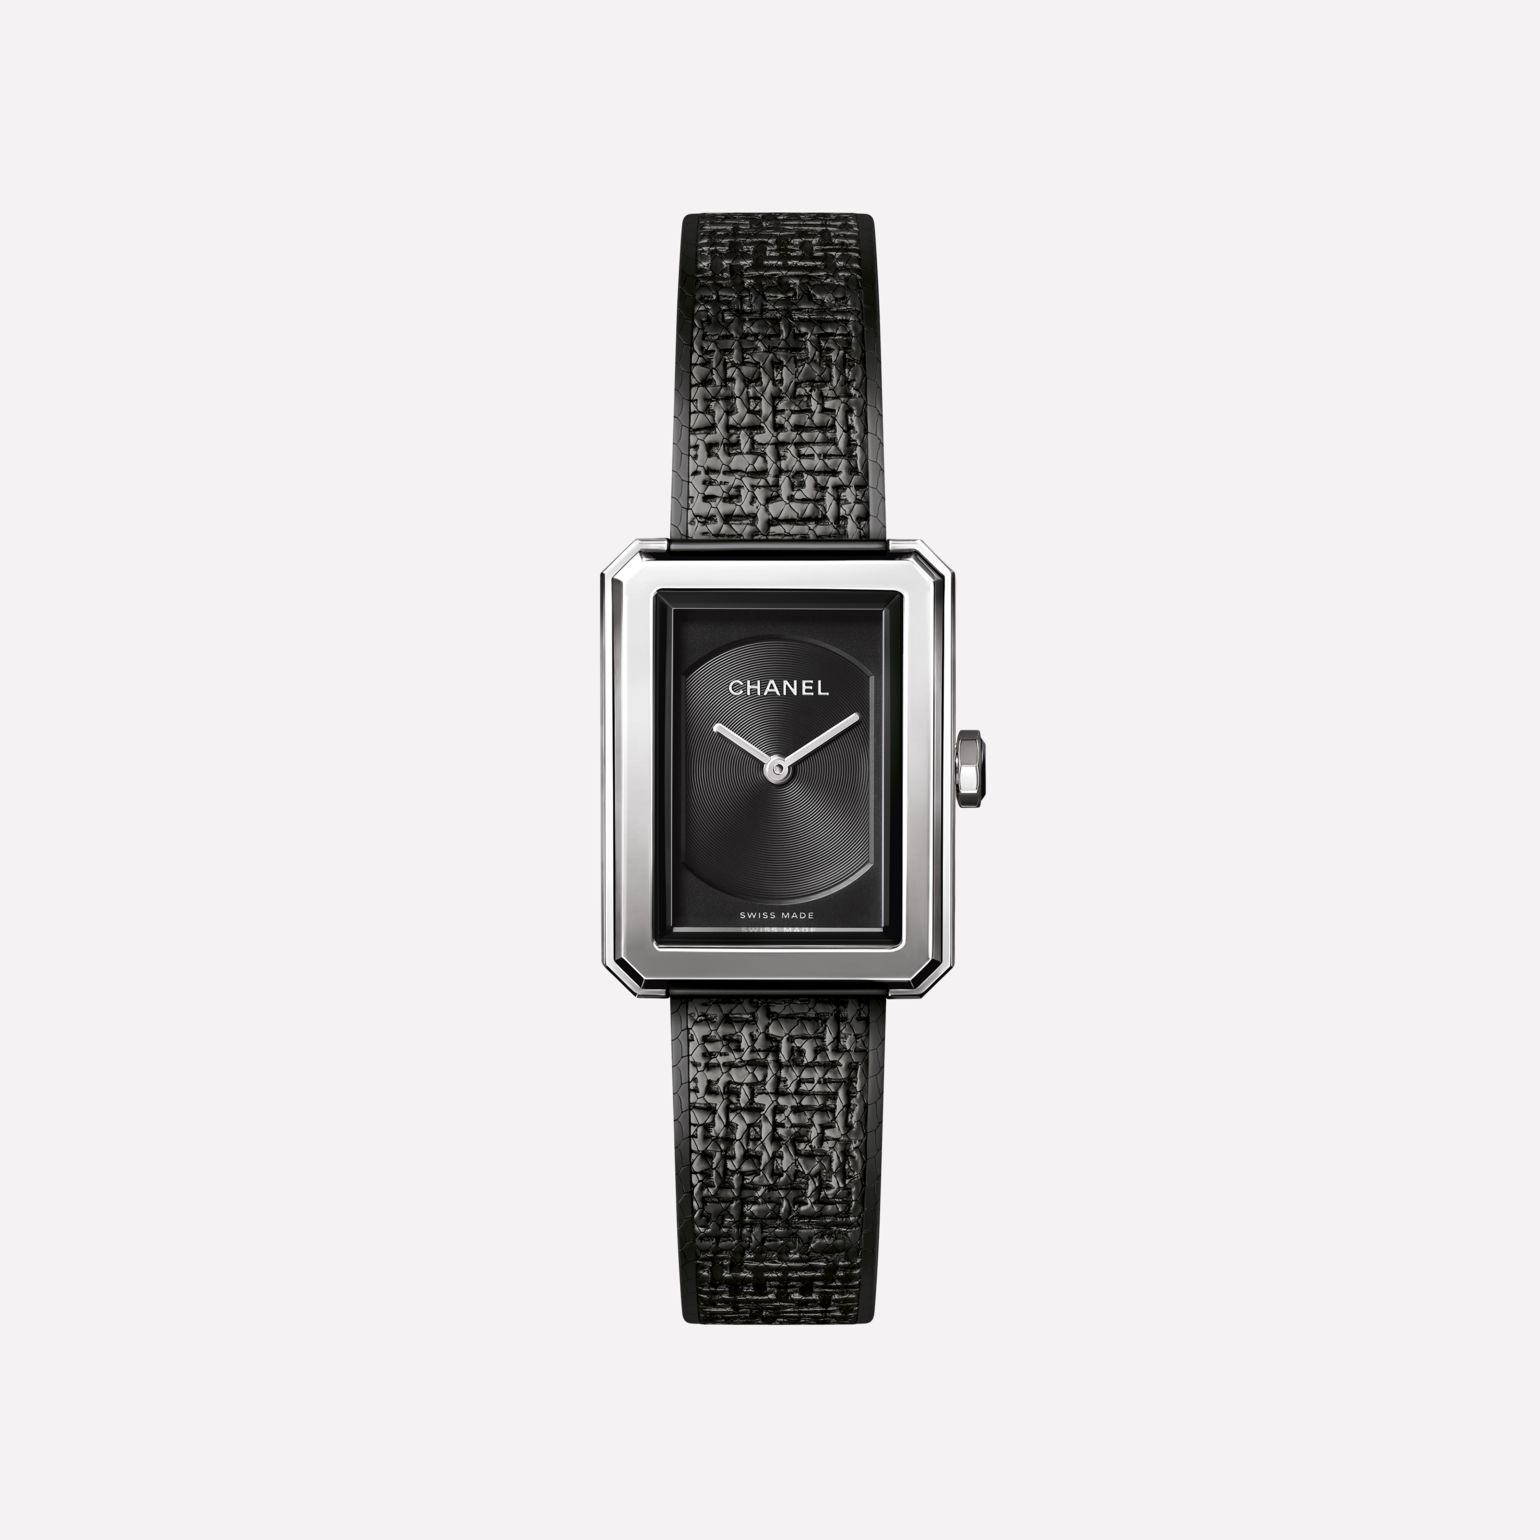 BOY·FRIEND TWEED Watch Small version, steel